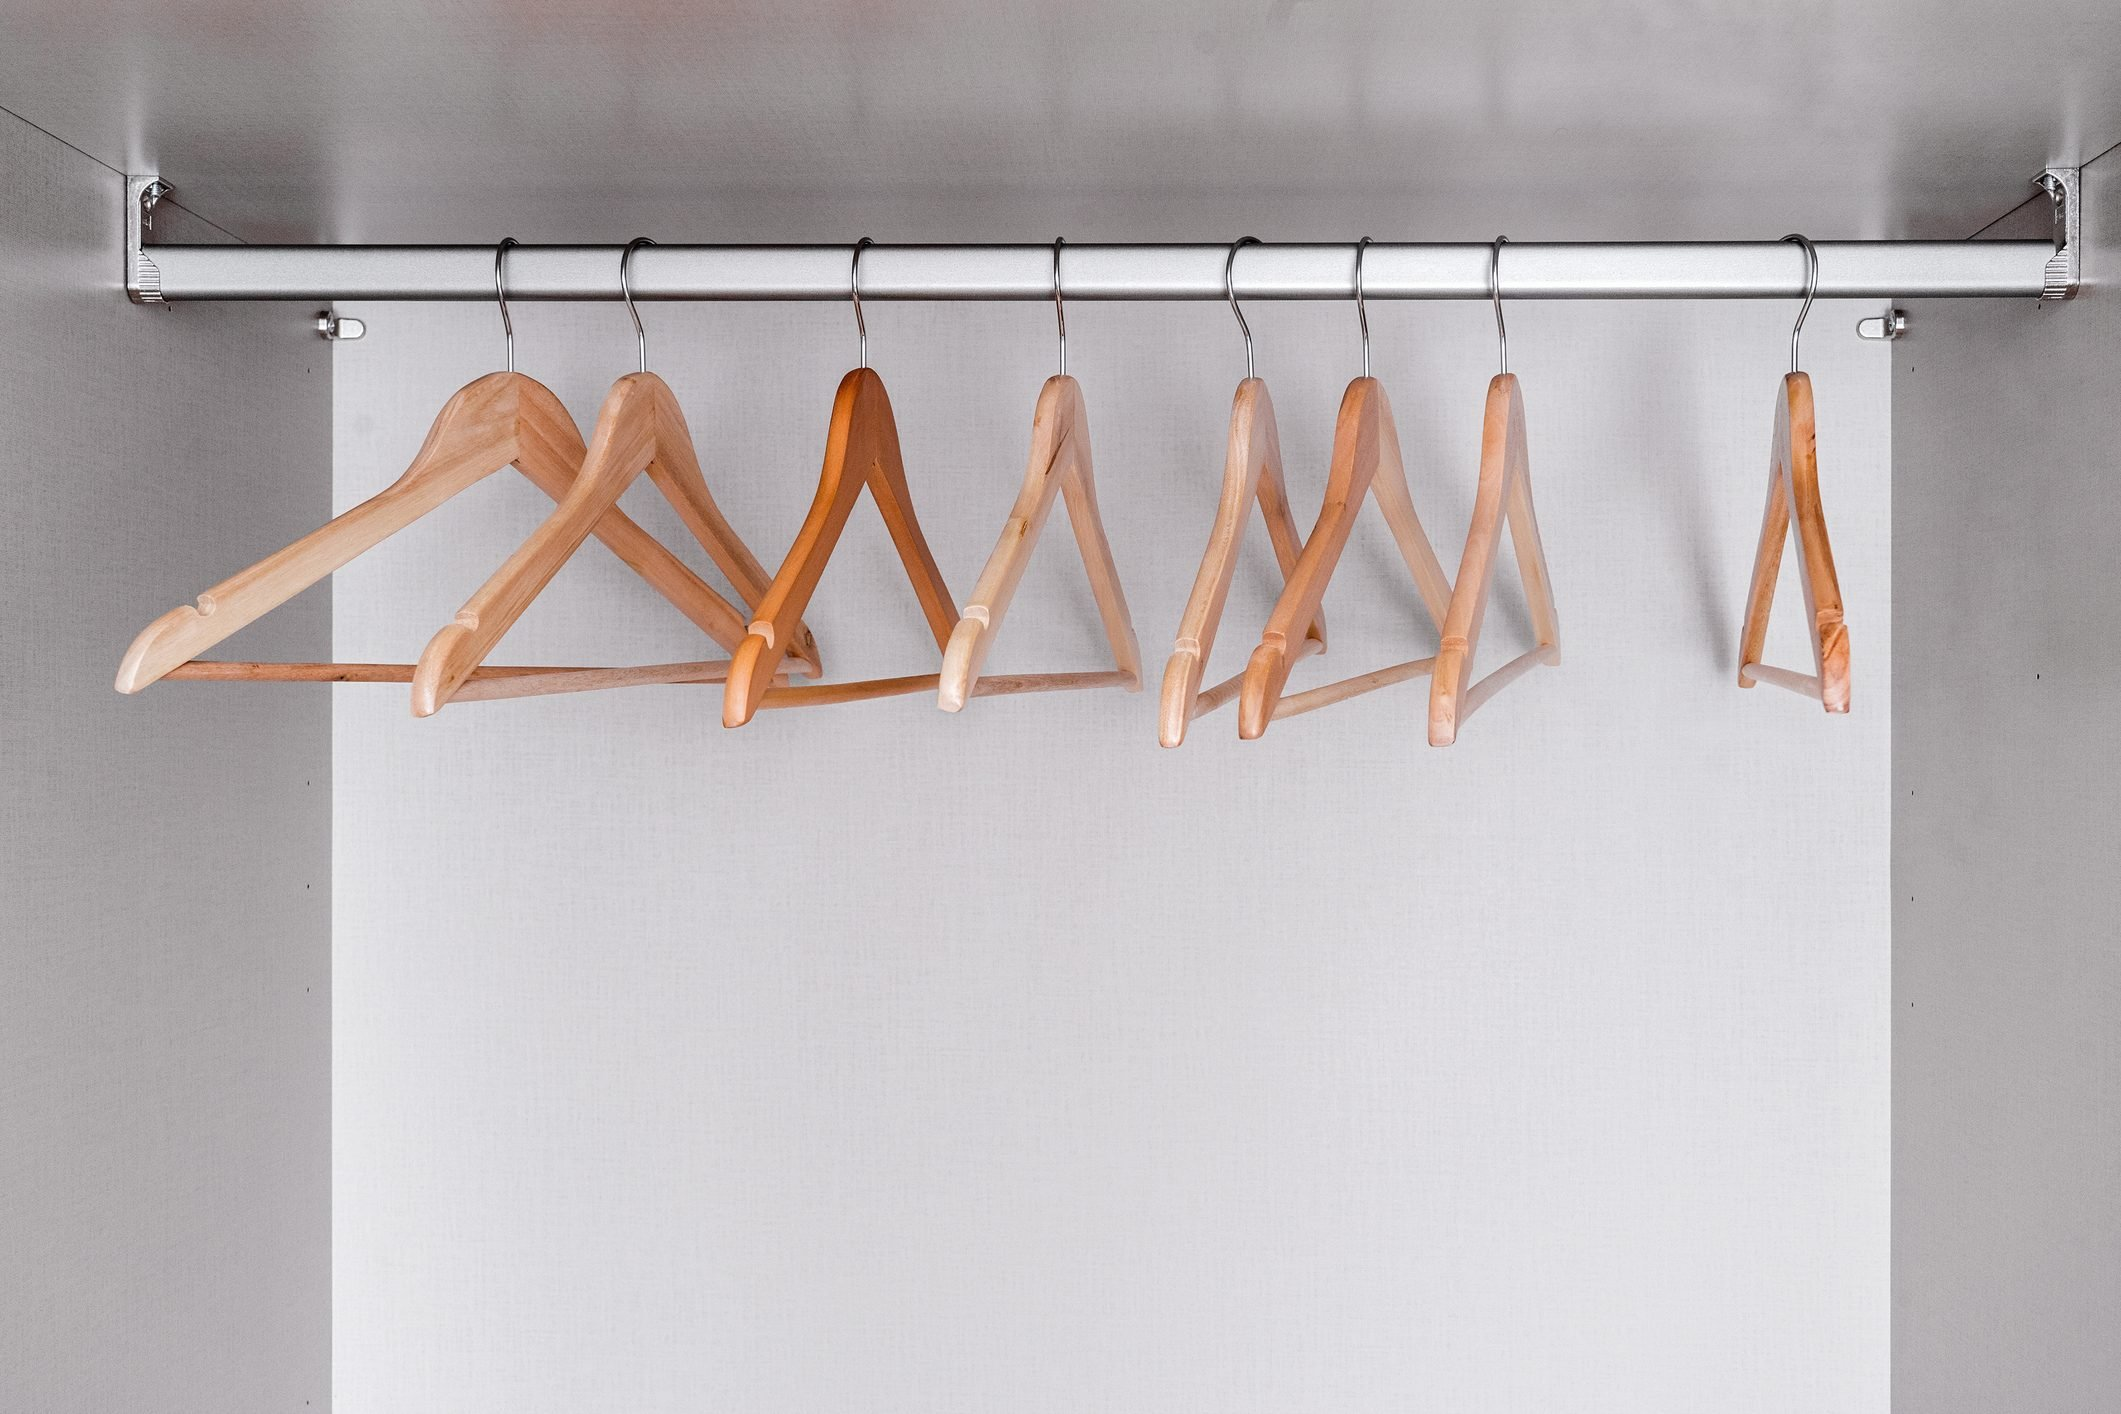 Many empty, lacquered light wood clothes hangers hang in wardrobe on metal rod. Internal space of furniture